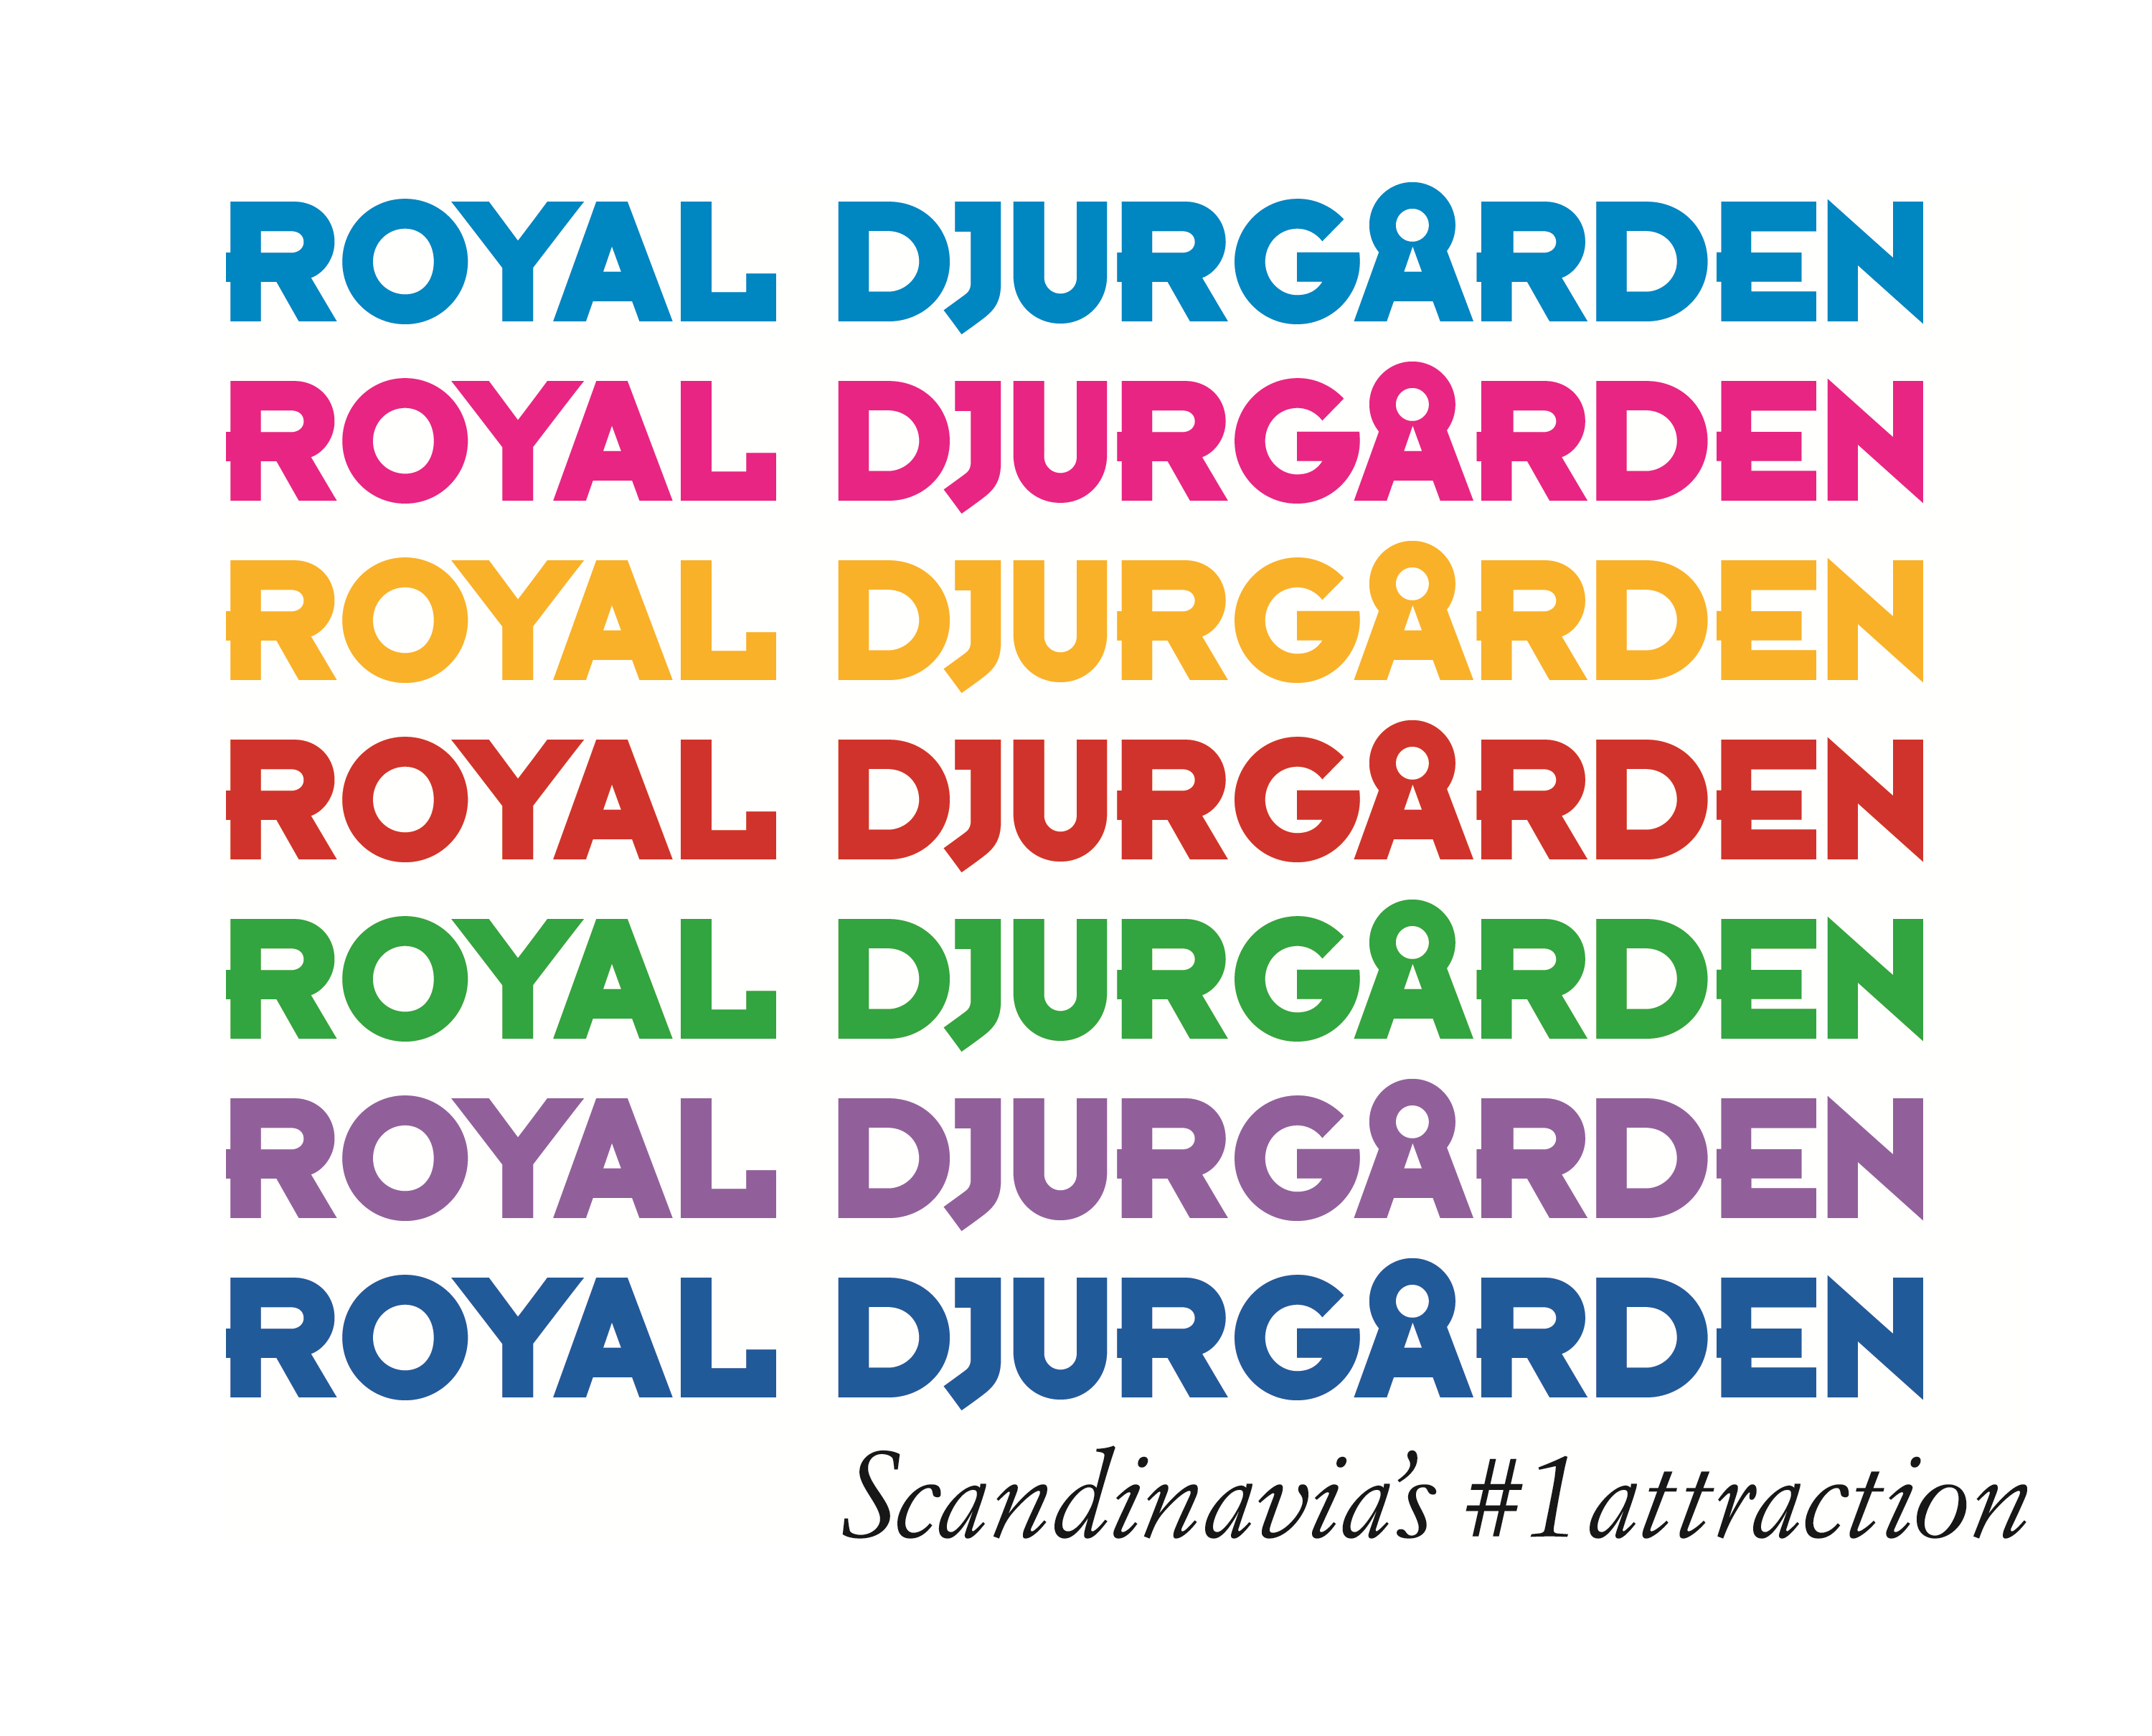 Royal-Djurgarden-Stockholm-Sweden-up-there-everywhere-custom-logotype